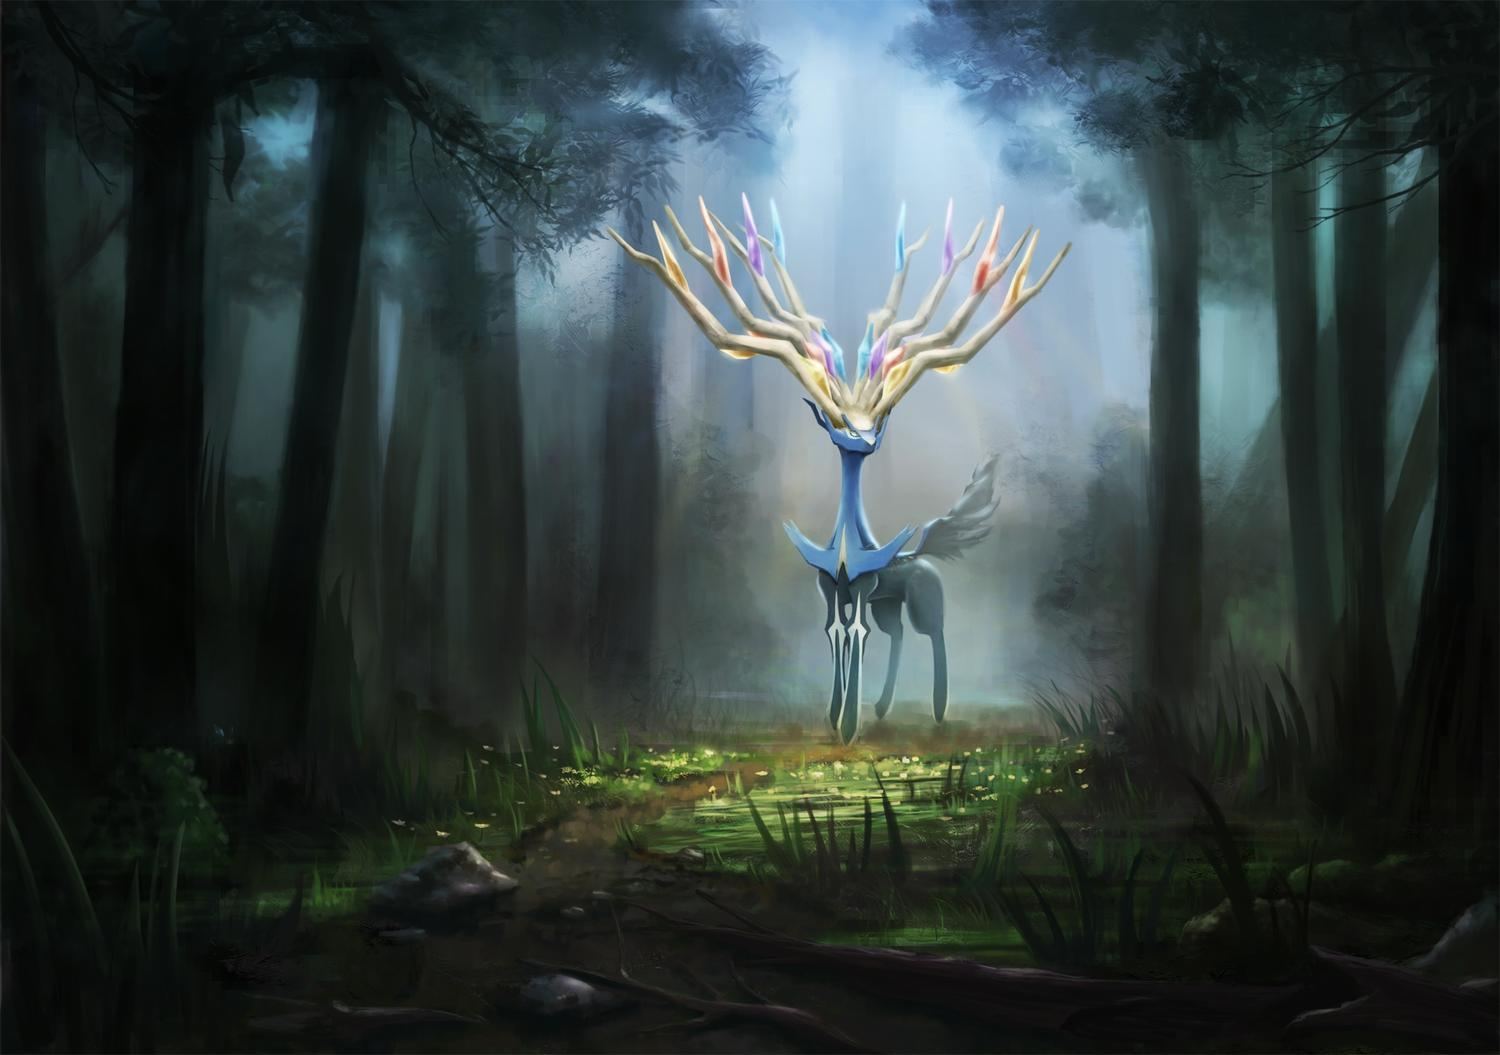 Xerneas Wallpapers, 50 Best HD Image of Xerneas, 4K Ultra HD